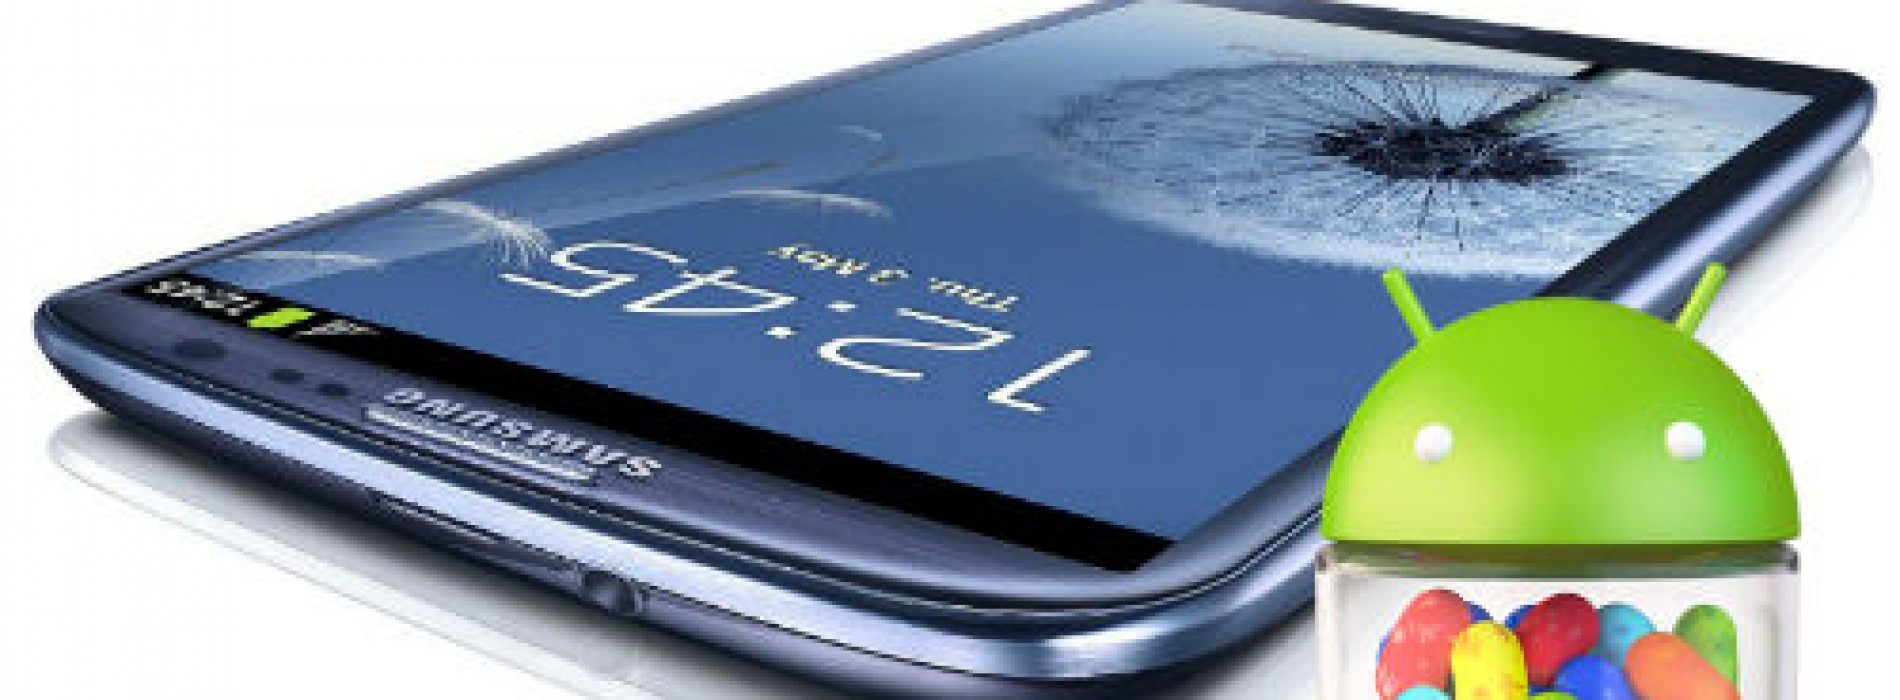 Android 4.1.2 Jelly Bean firmware leaks for the Samsung Galaxy S III